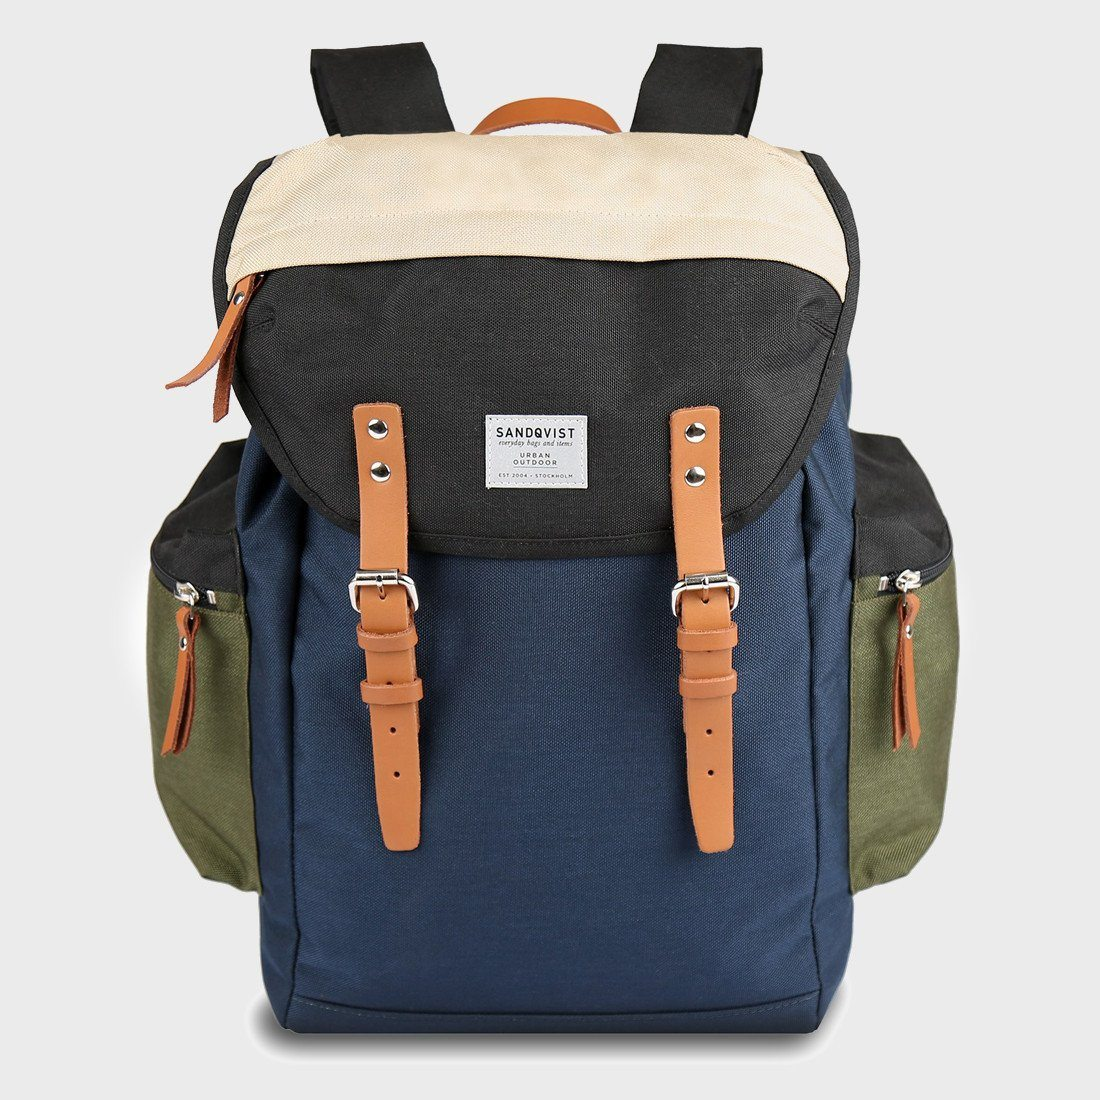 Sandqvist Lars-Gortan Backpack Multi